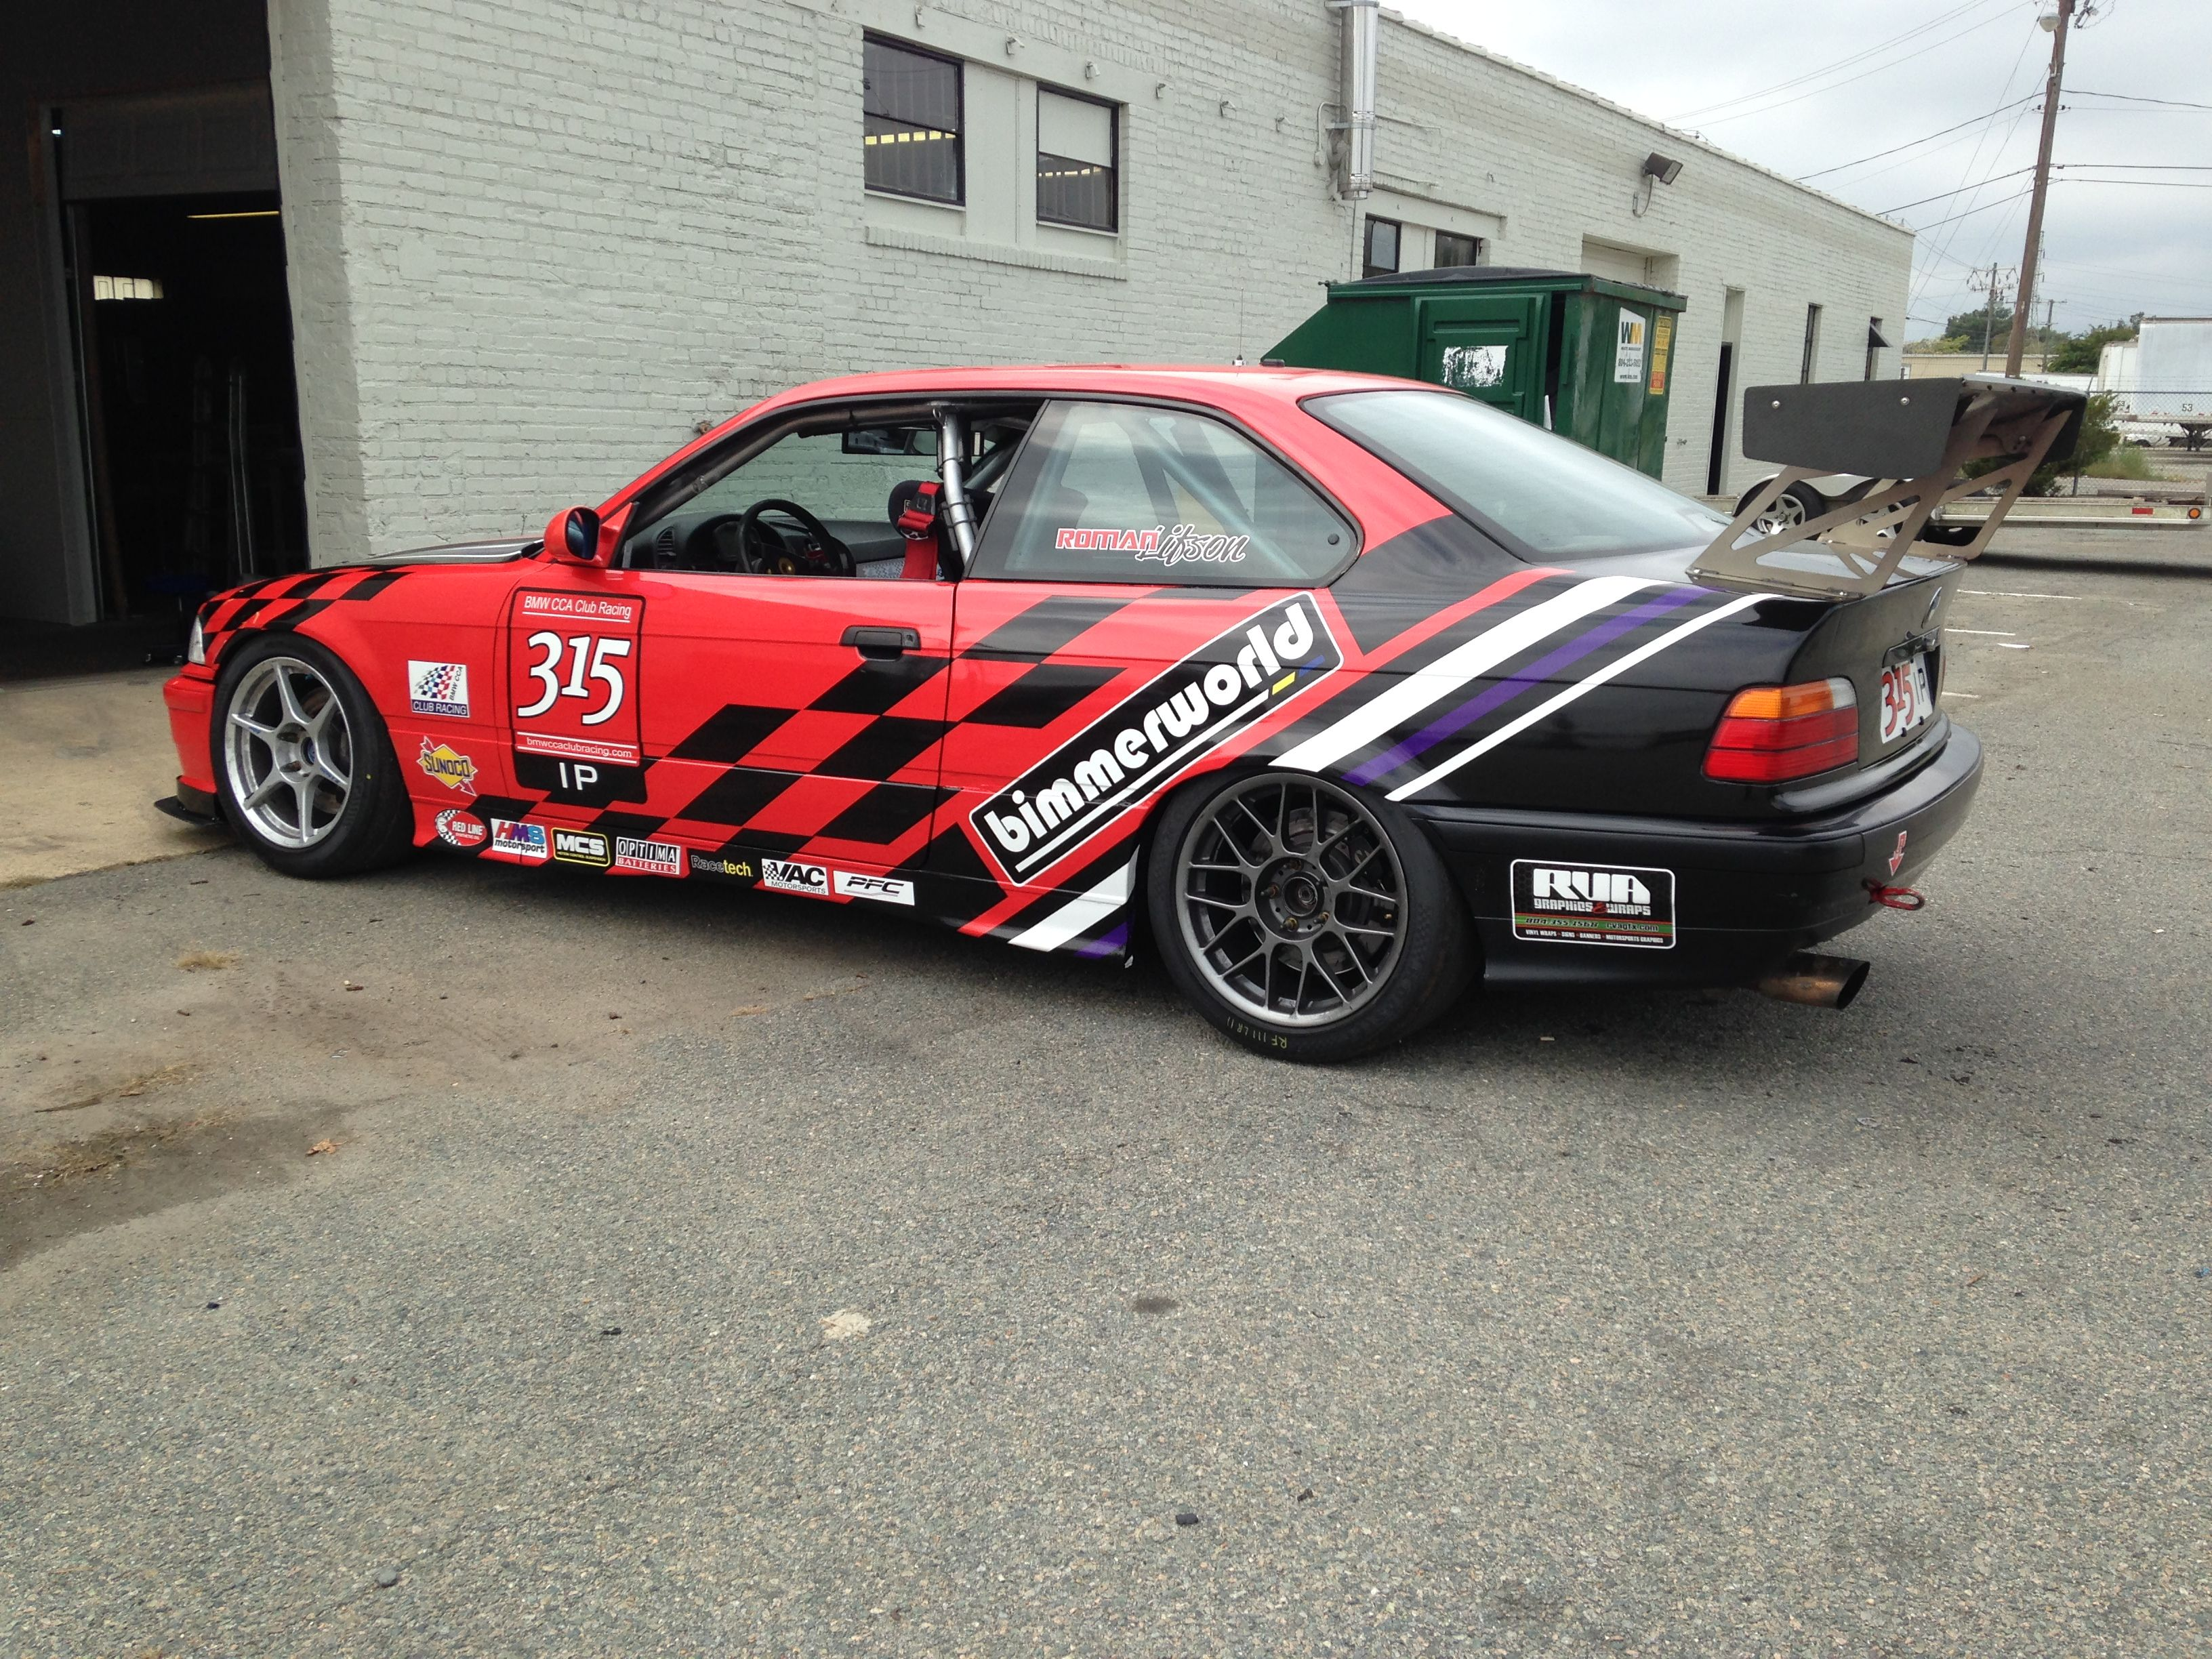 Roadrace M3 Bmw Vinyl Wrap Designed And Installed By Robert